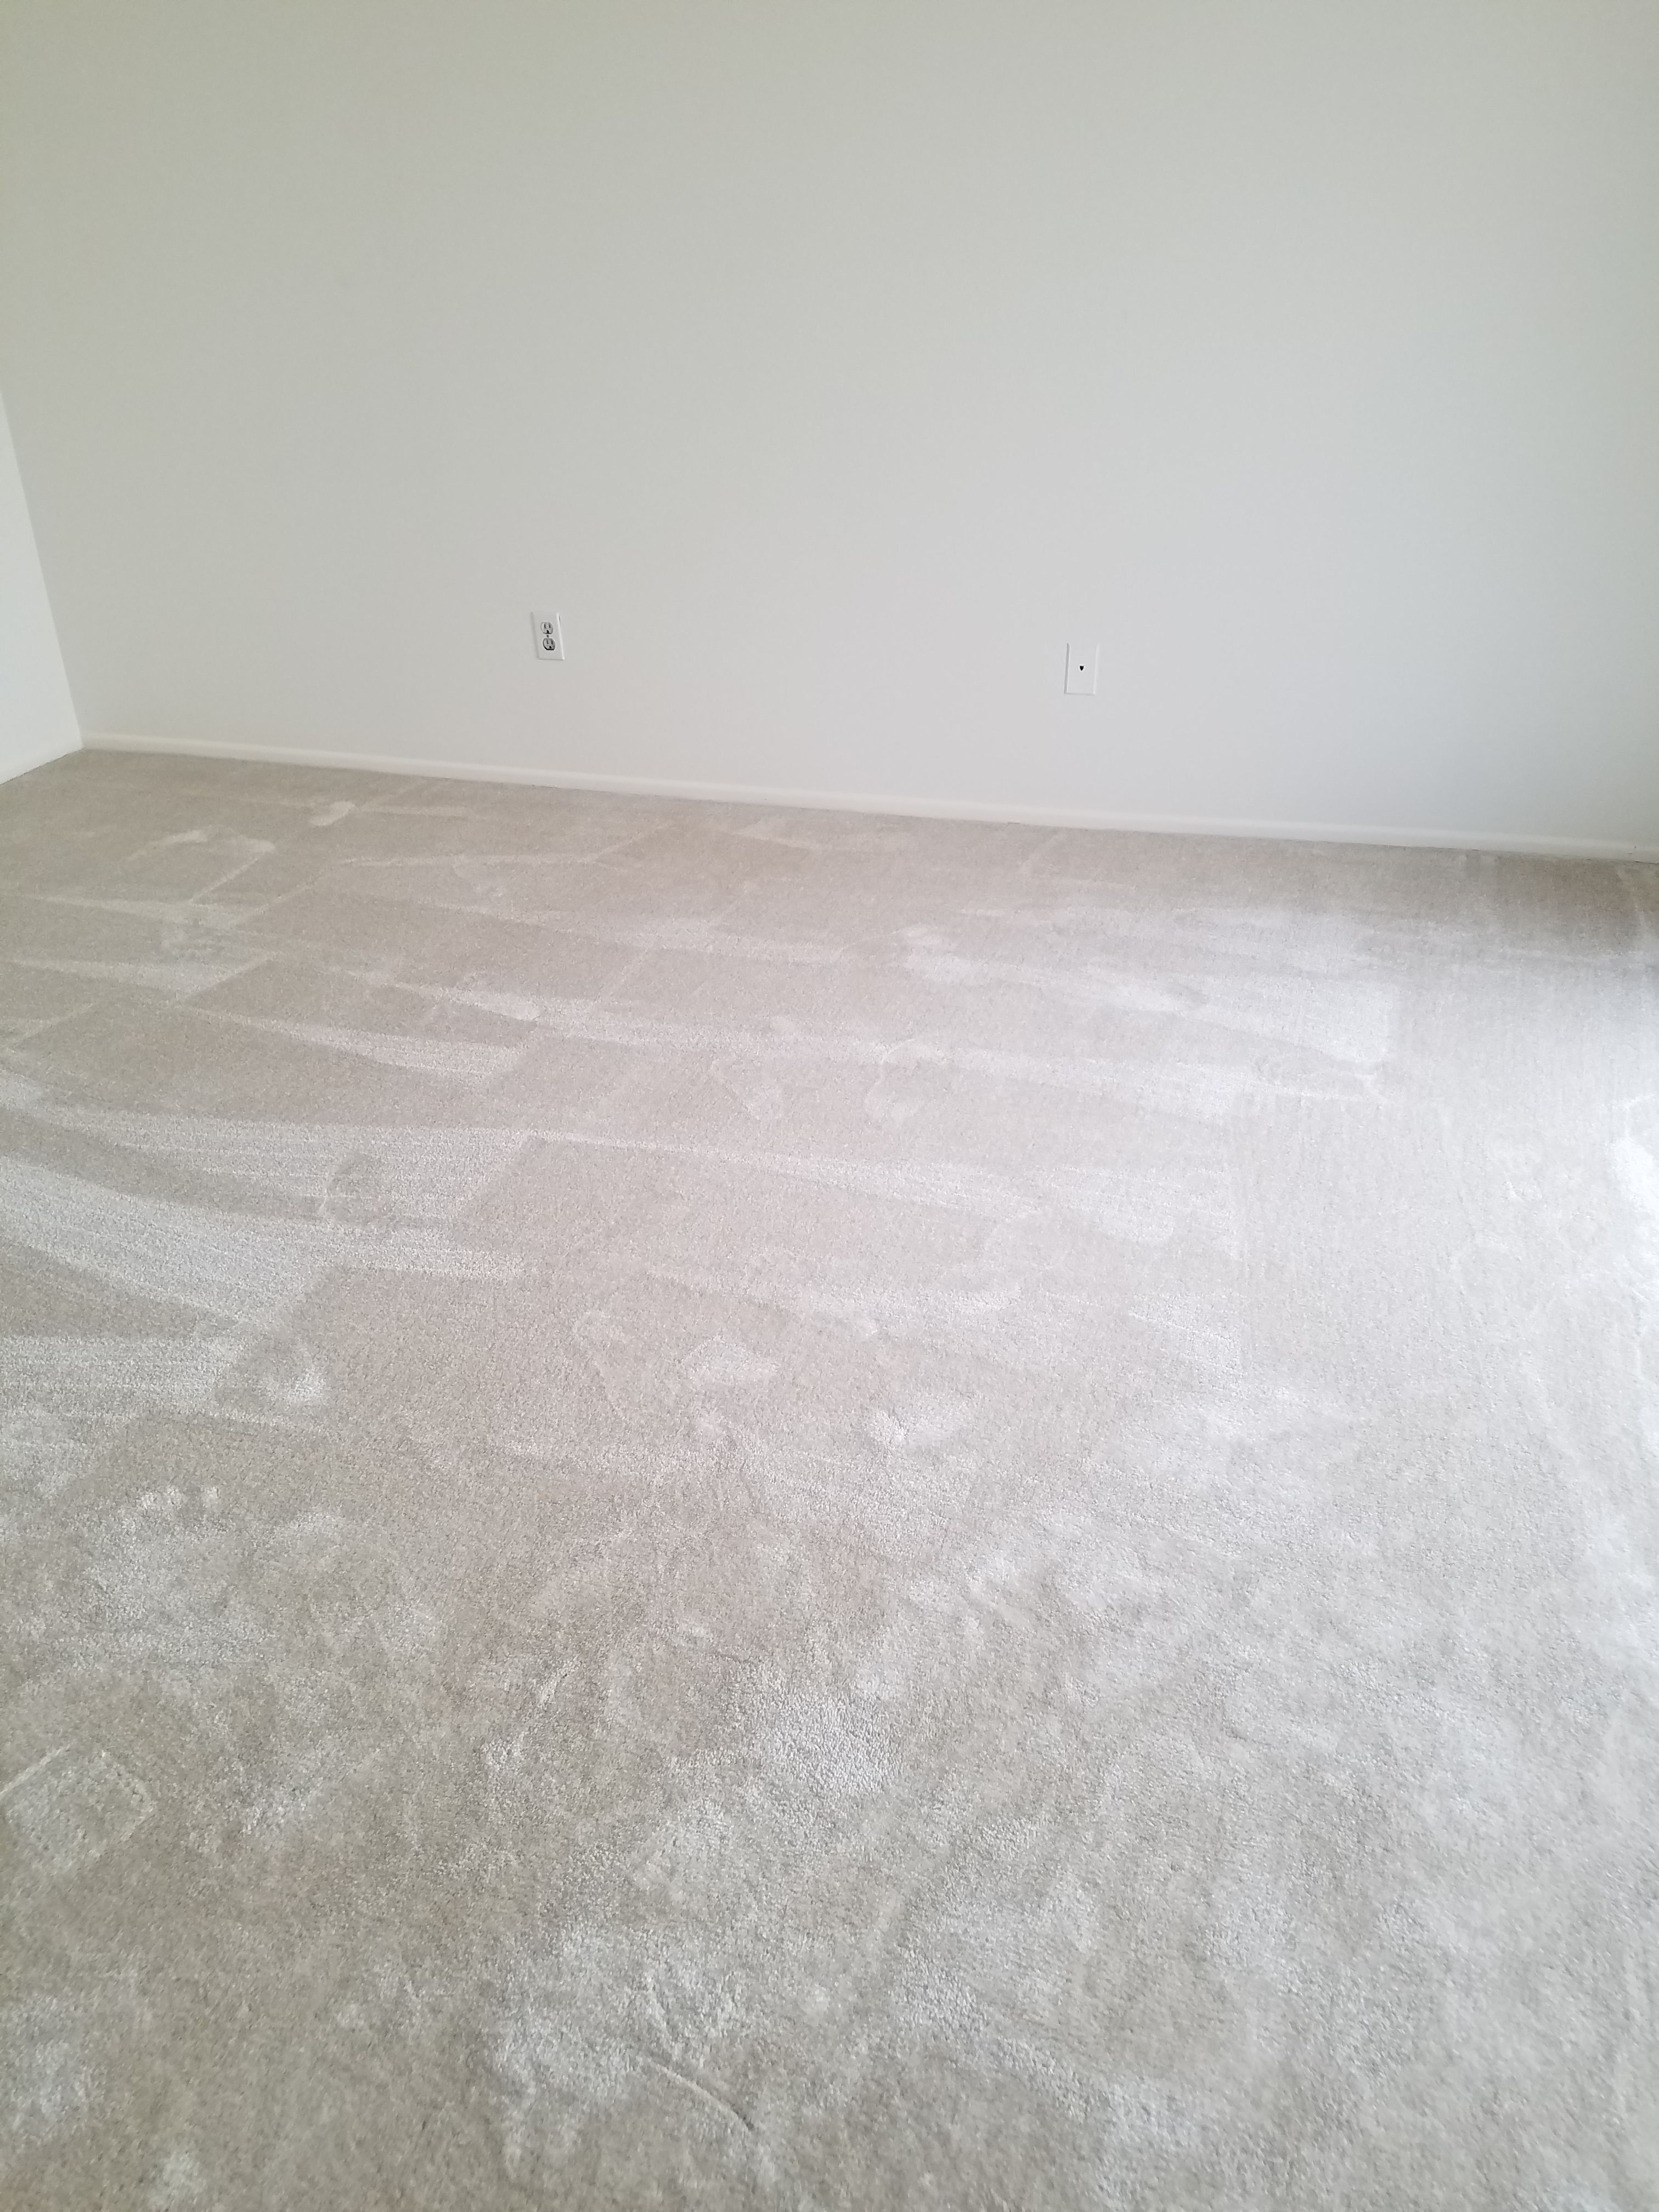 Are You Planning On Installing A New Floor Floor Installation Flooring Janitorial Cleaning Services